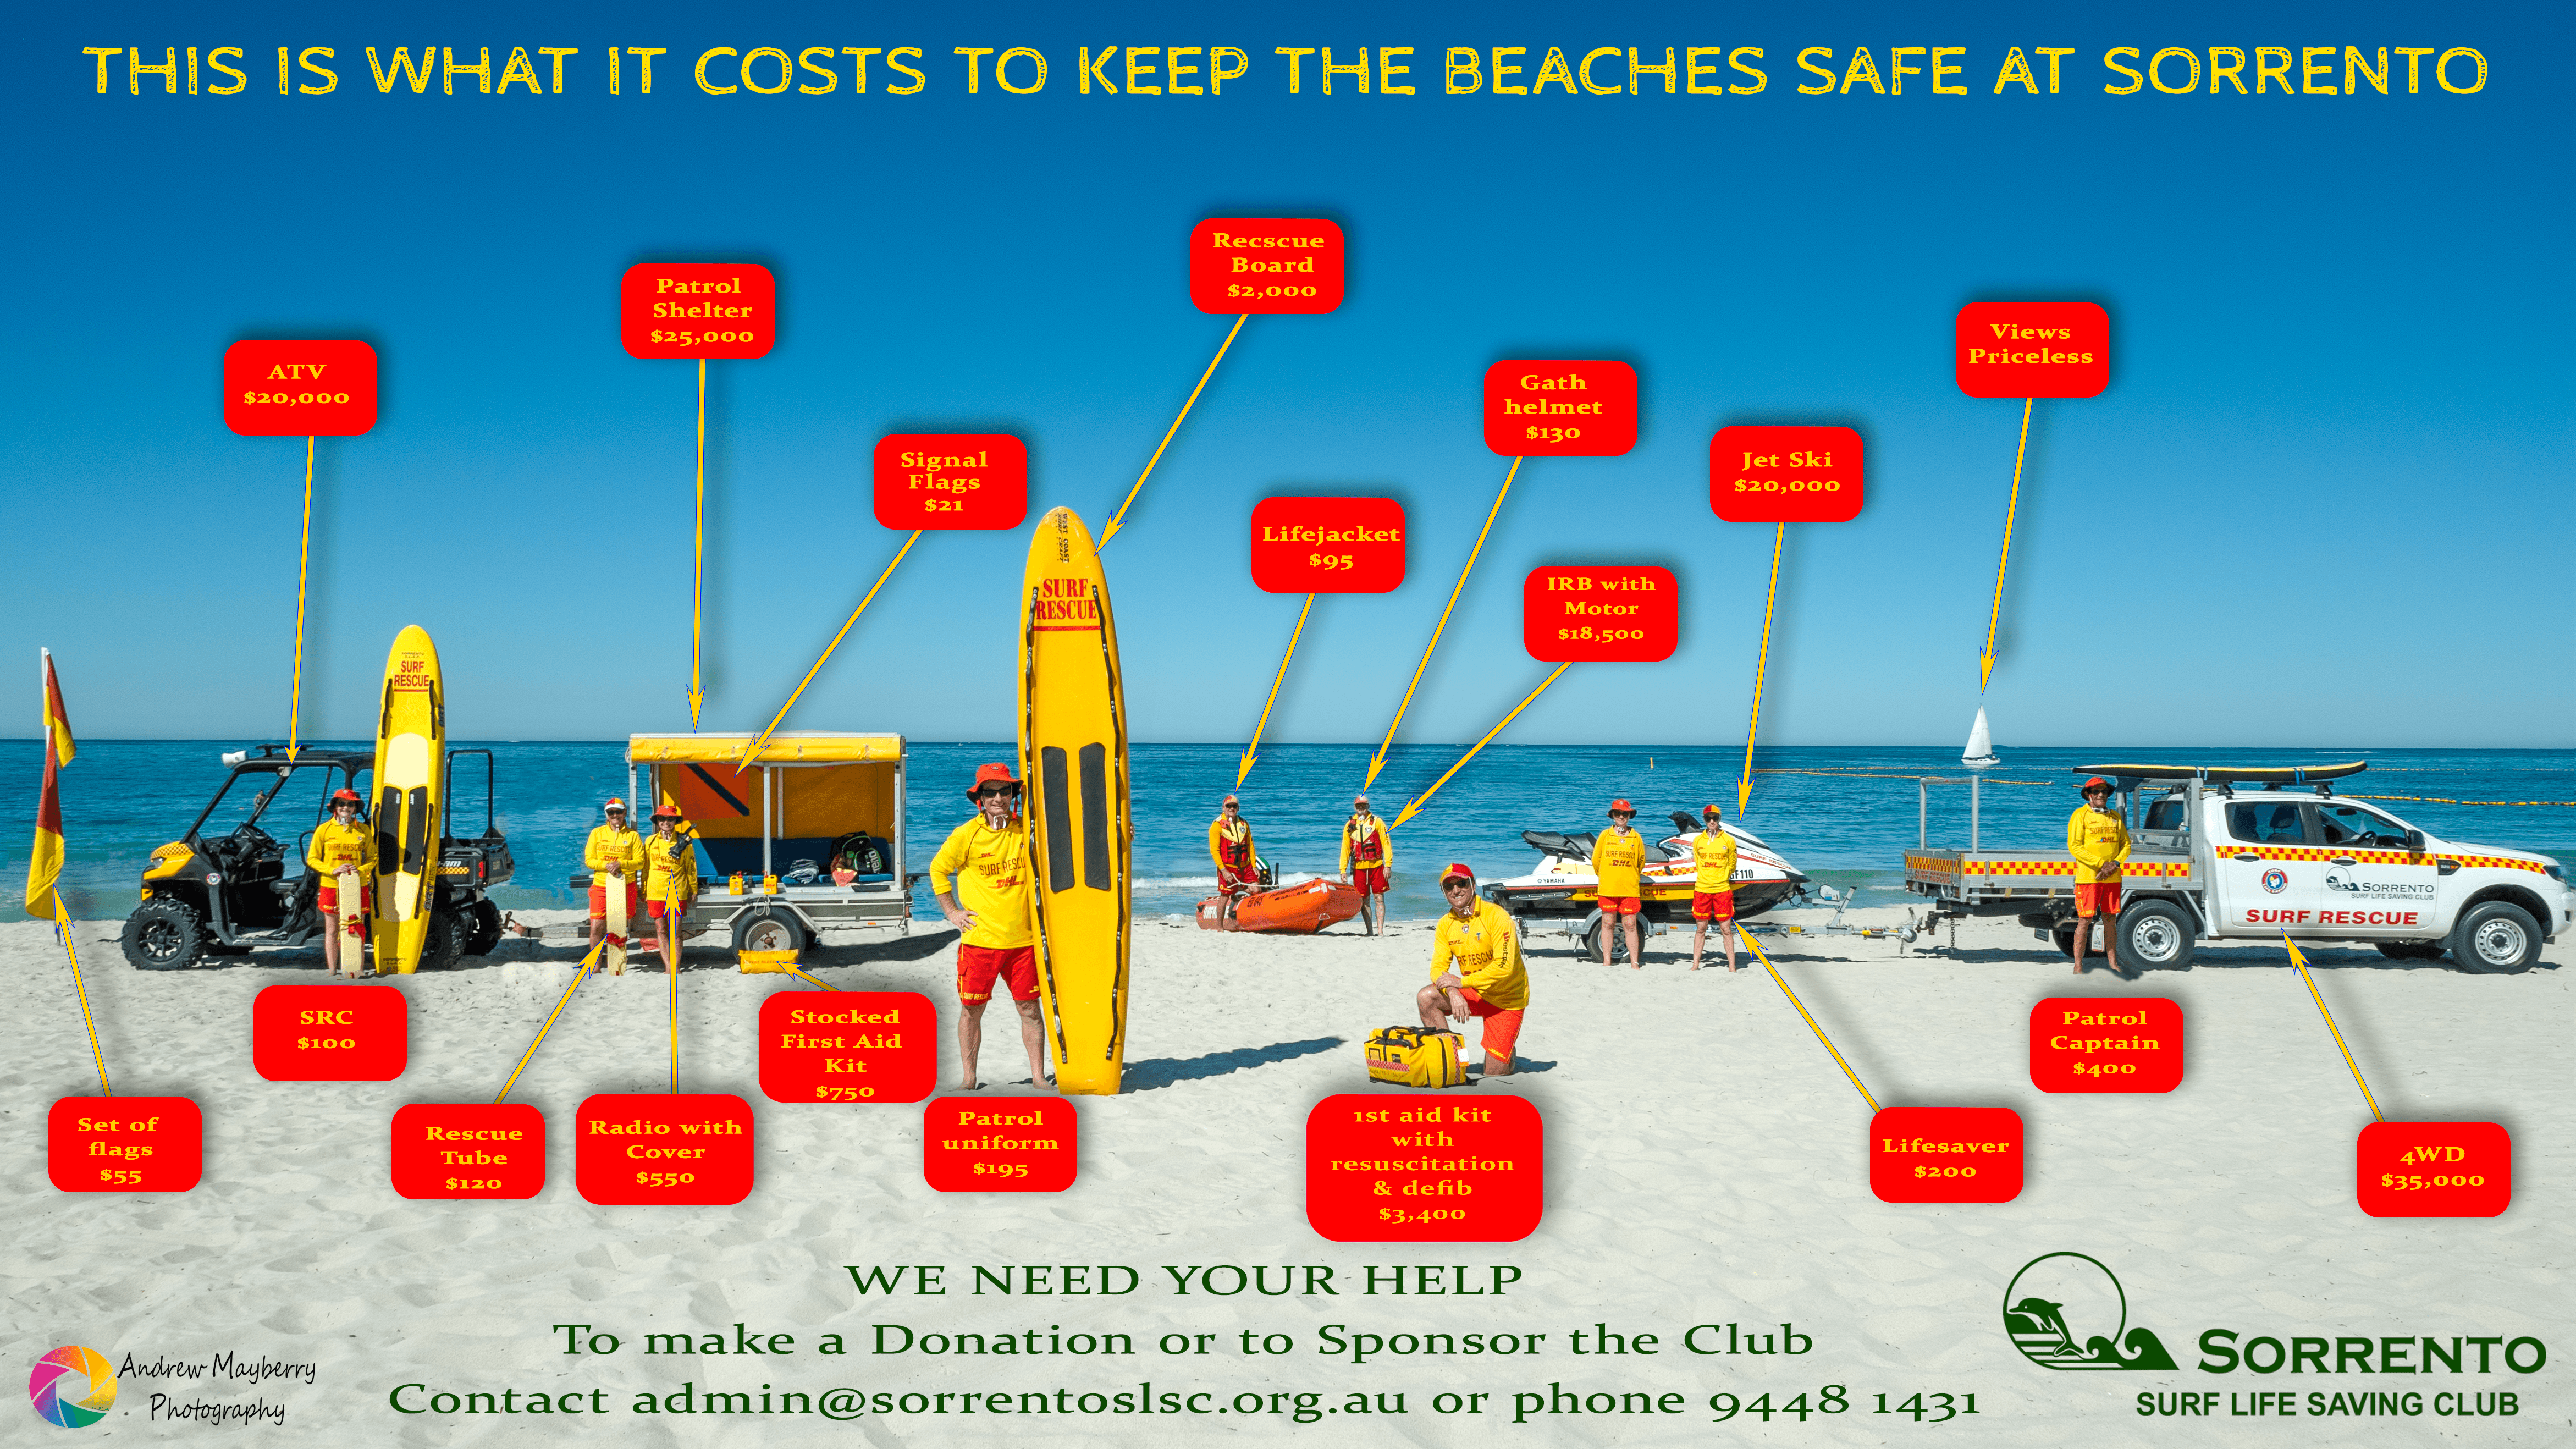 THIS IS WHAT IT COSTS TO KEEP THE BEACHES SAFE AT SORRENTO